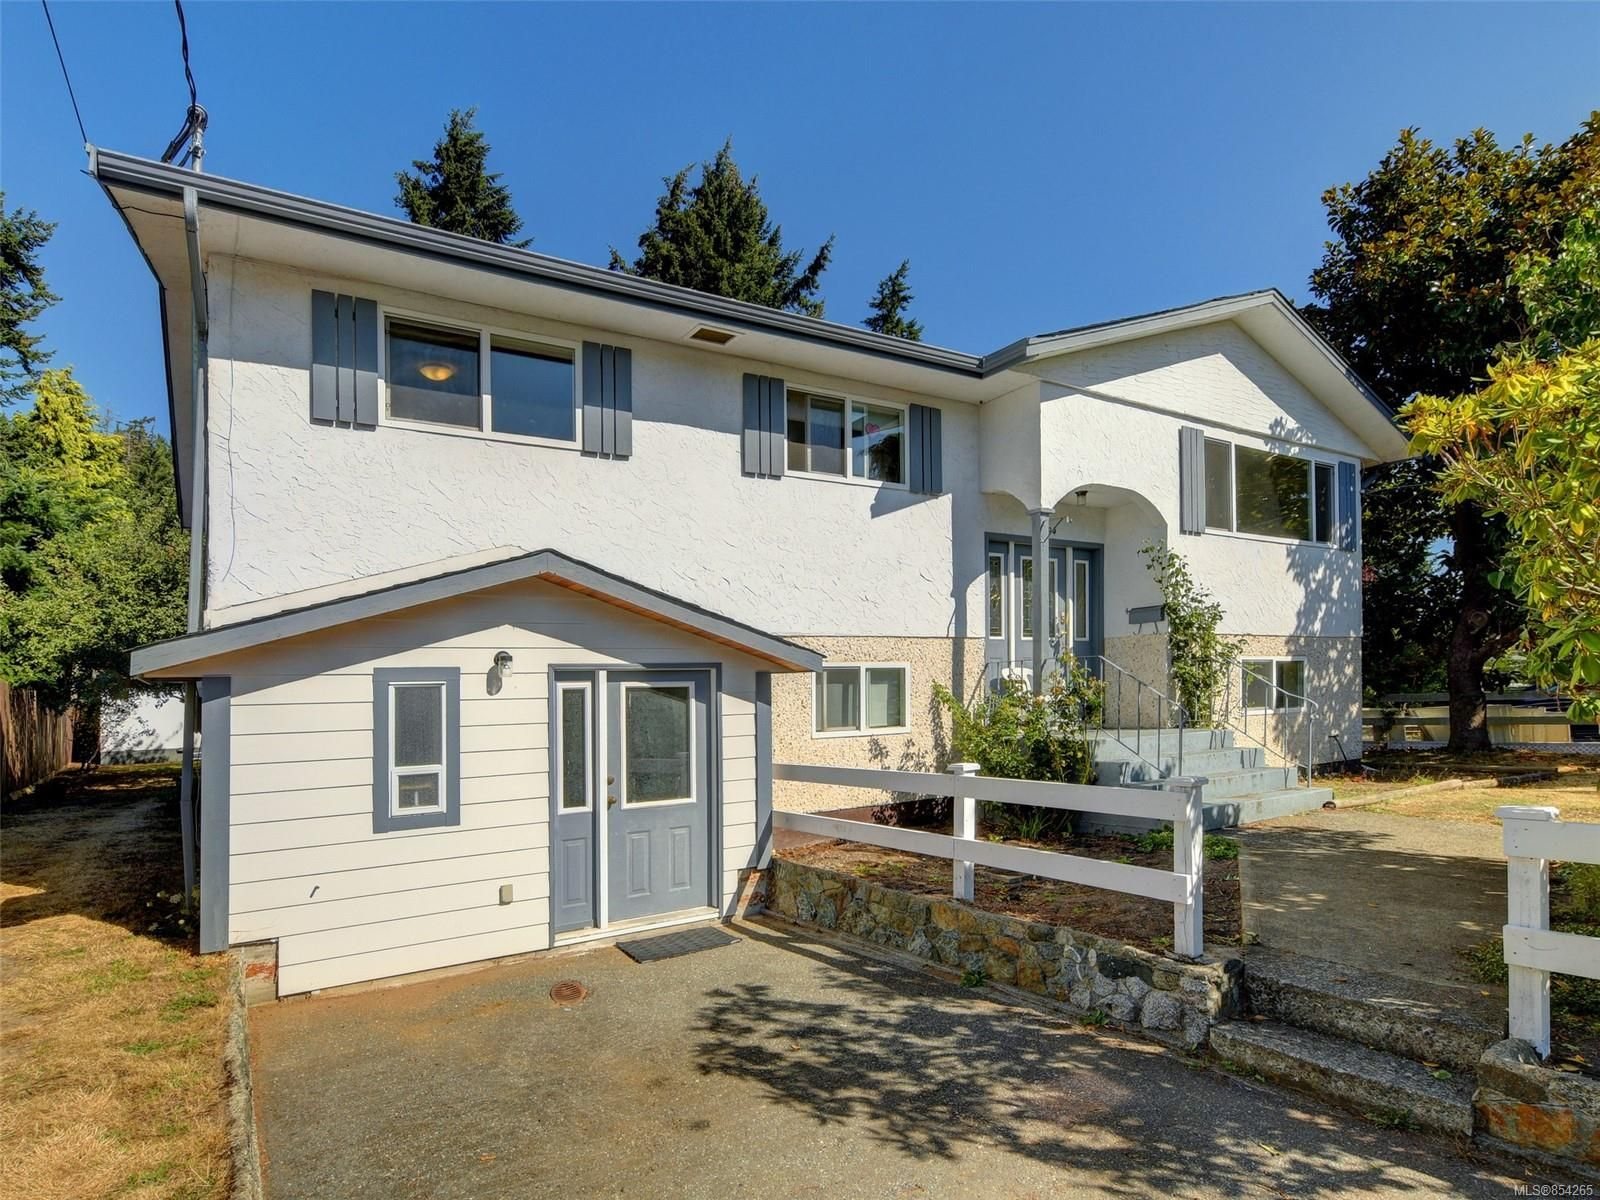 Main Photo: 2794 Ronald Rd in : La Glen Lake House for sale (Langford)  : MLS®# 854265